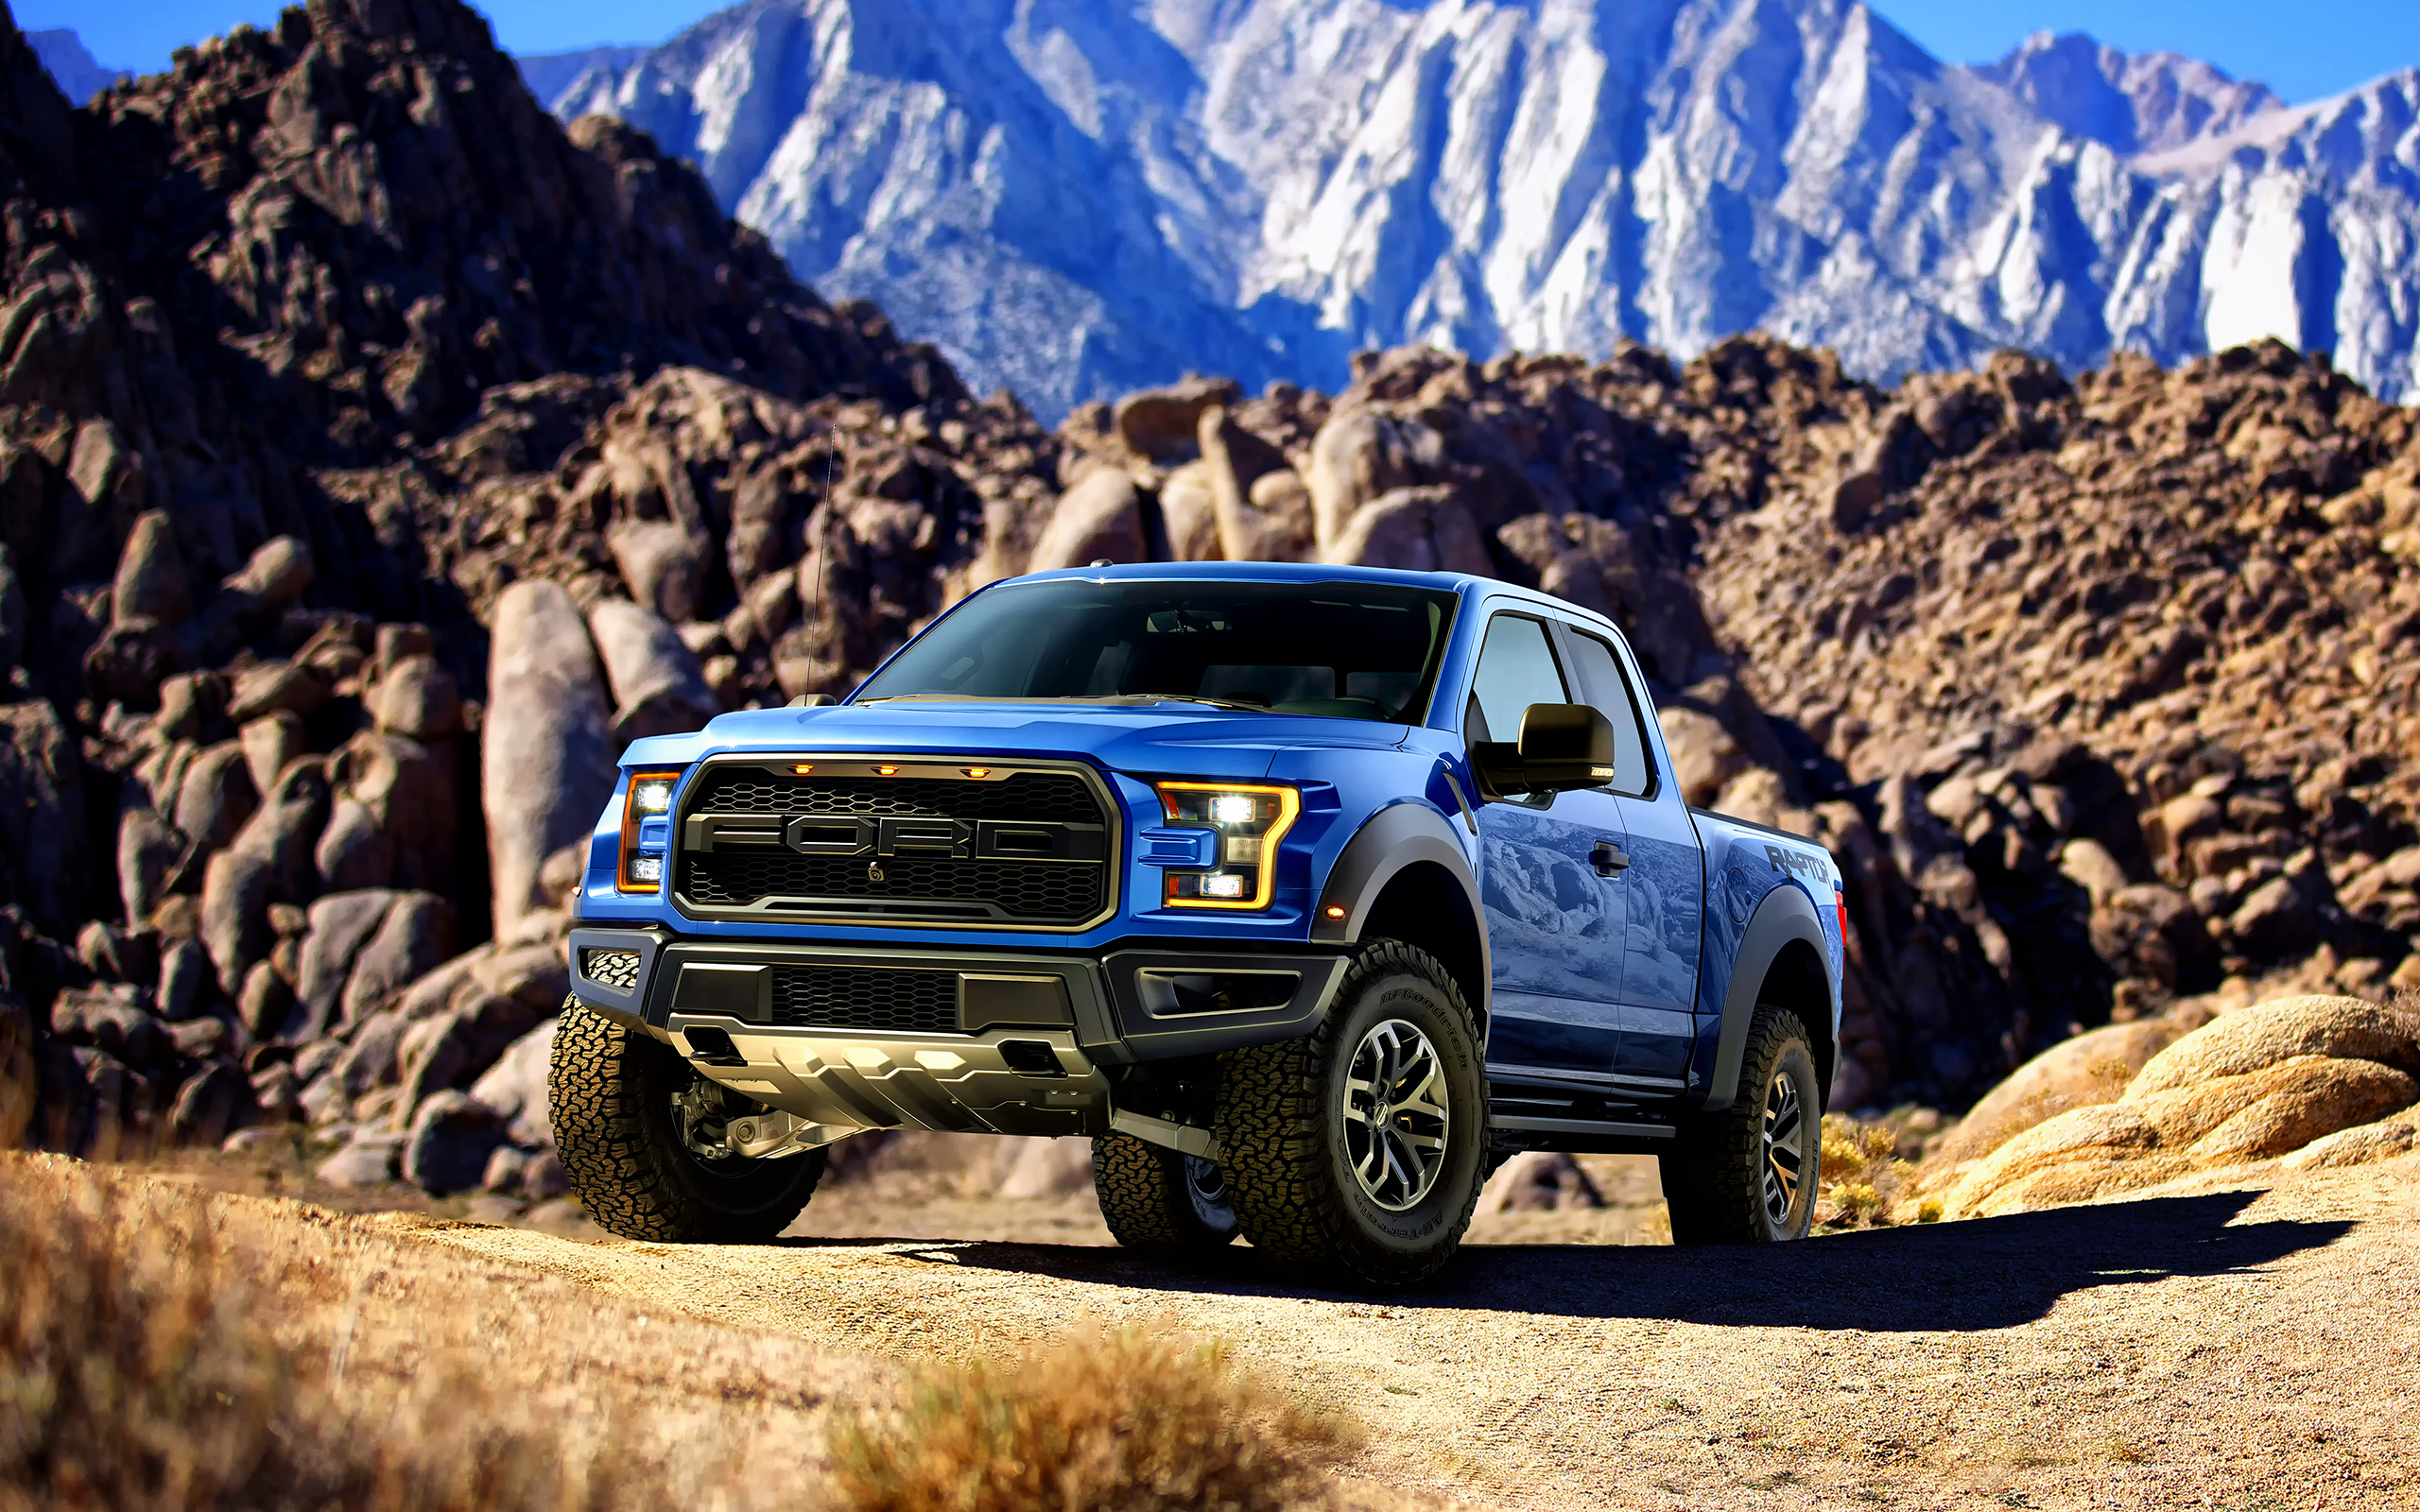 50 ford raptor hd wallpapers background images wallpaper abyss hd wallpaper background image id613760 voltagebd Choice Image